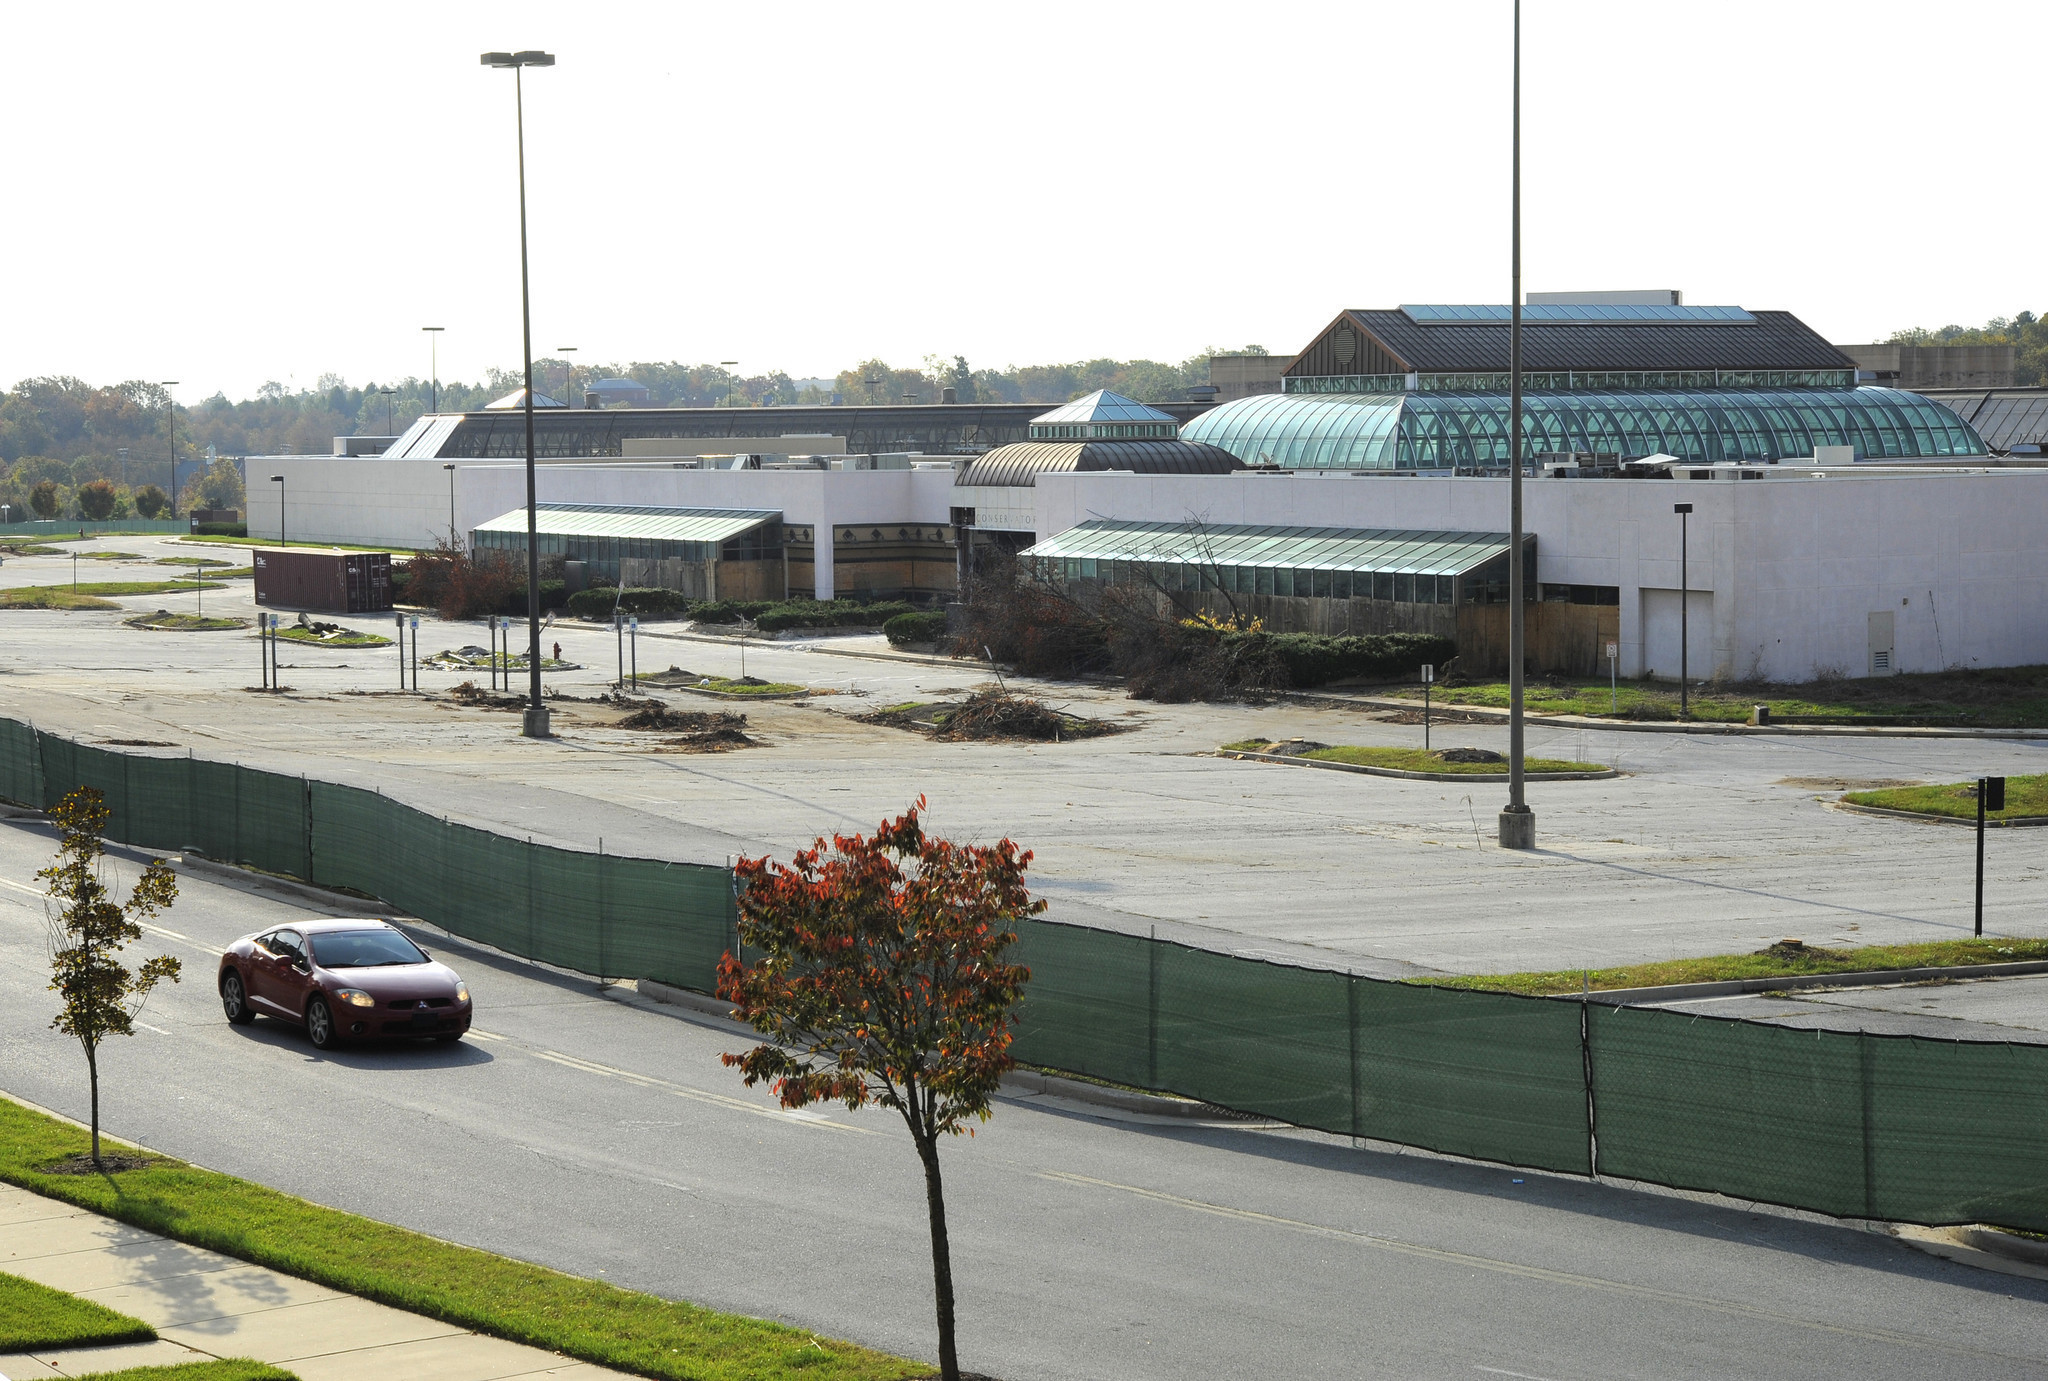 owings mills dating site According to our research of maryland and other state lists there were 41 registered sex offenders living in owings mills, maryland as of august 07, 2018 the ratio of number of residents in owings mills to the number of sex offenders is 818 to 1 the number of registered sex offenders compared to .